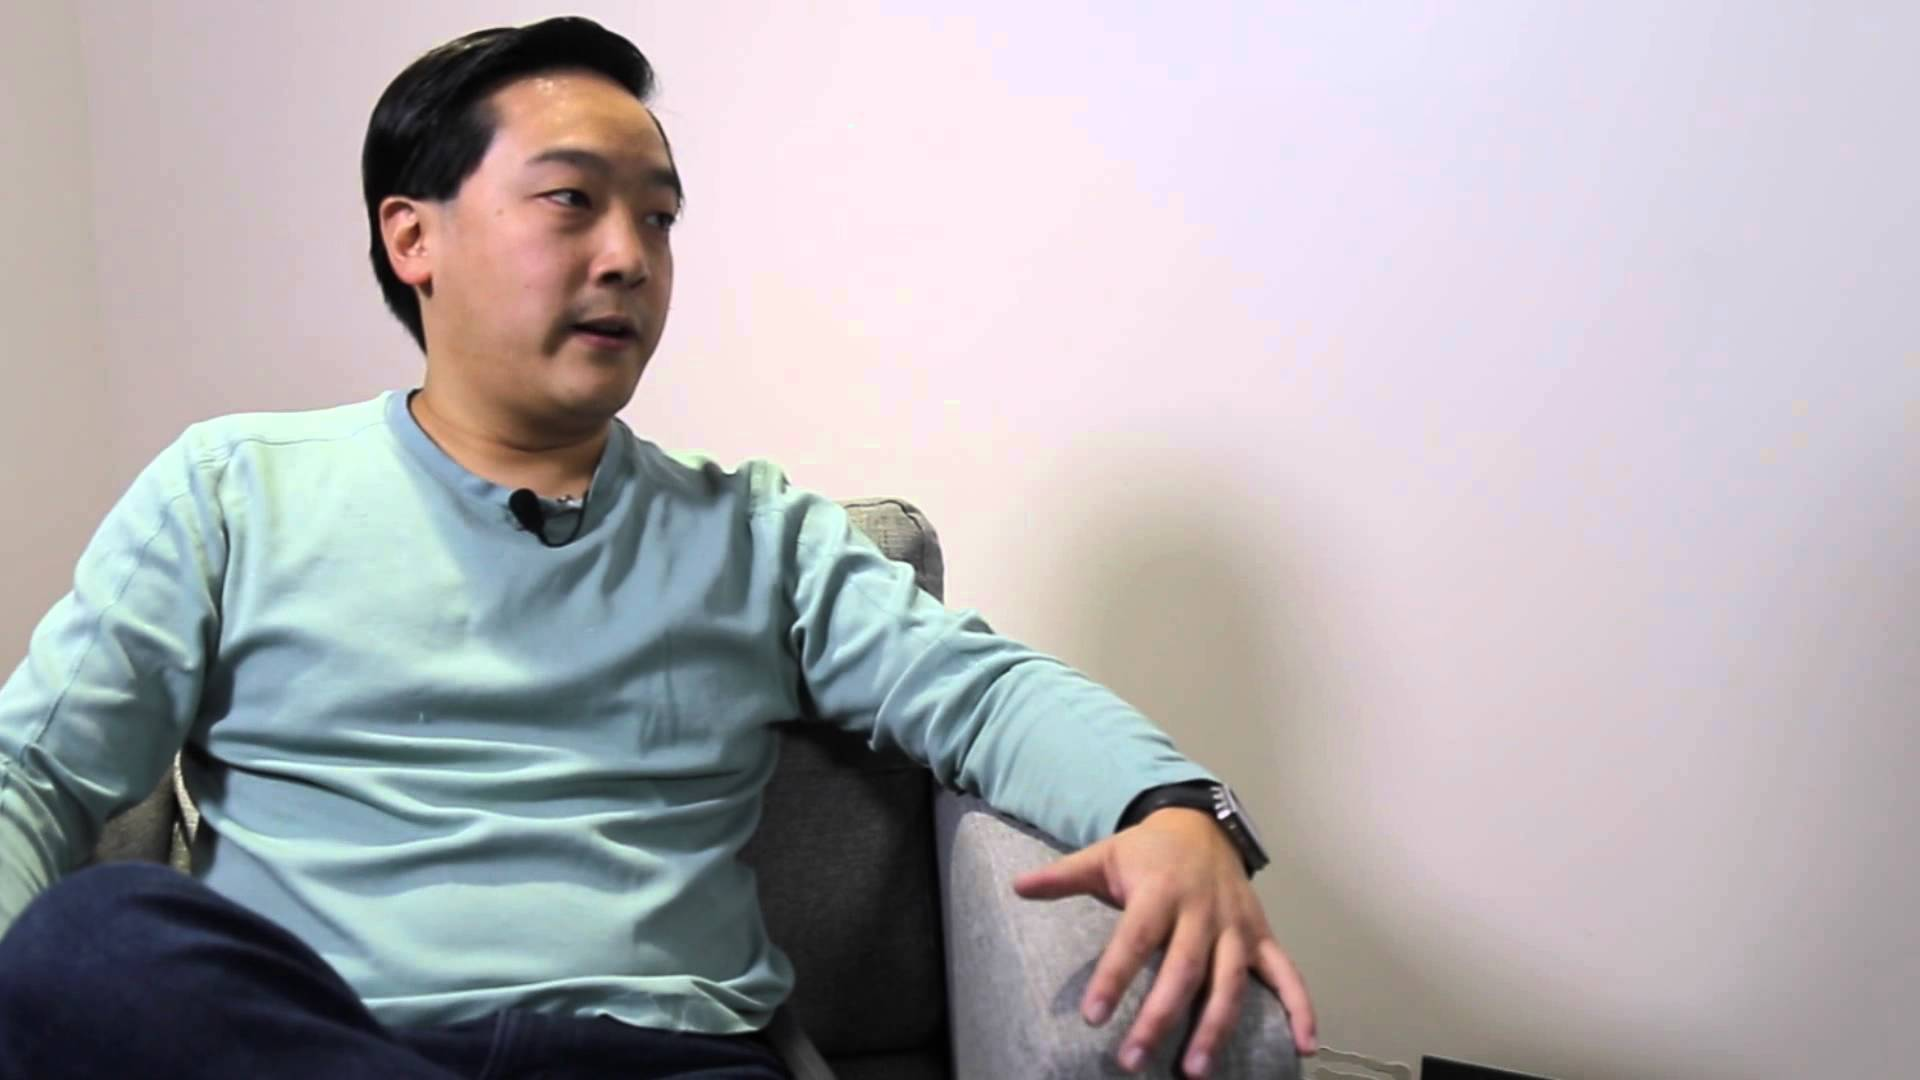 Bitcoin | Bear Market | Charlie Lee | Litecoin | Bitcoin Price | Buy Bitcoin